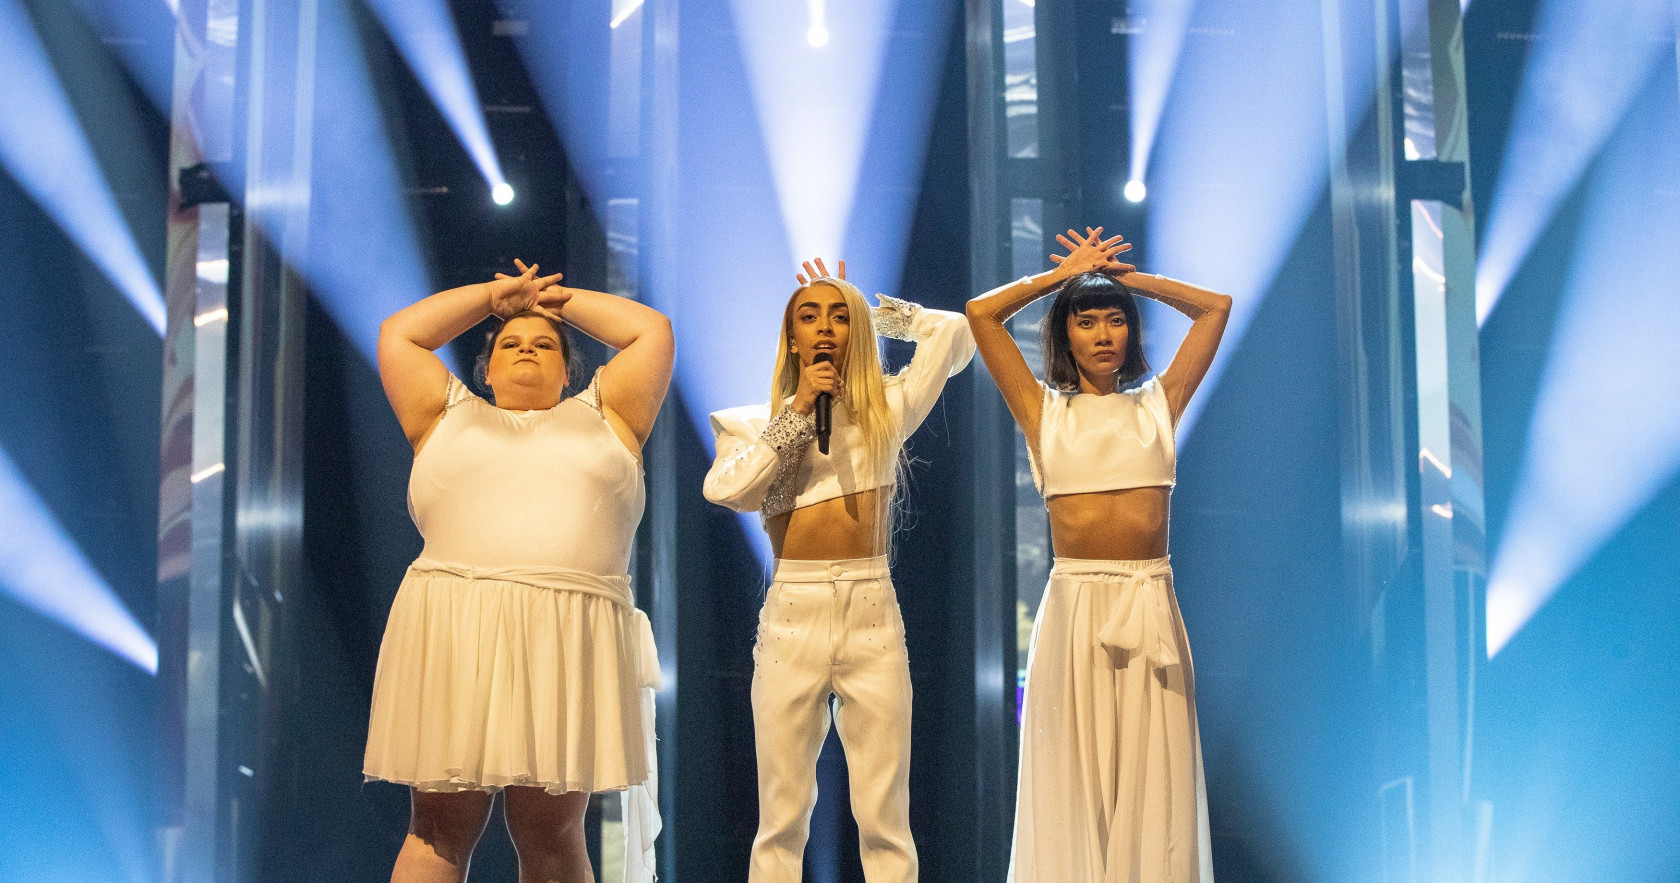 France: National broadcaster confirms Eurovision 2020 participation